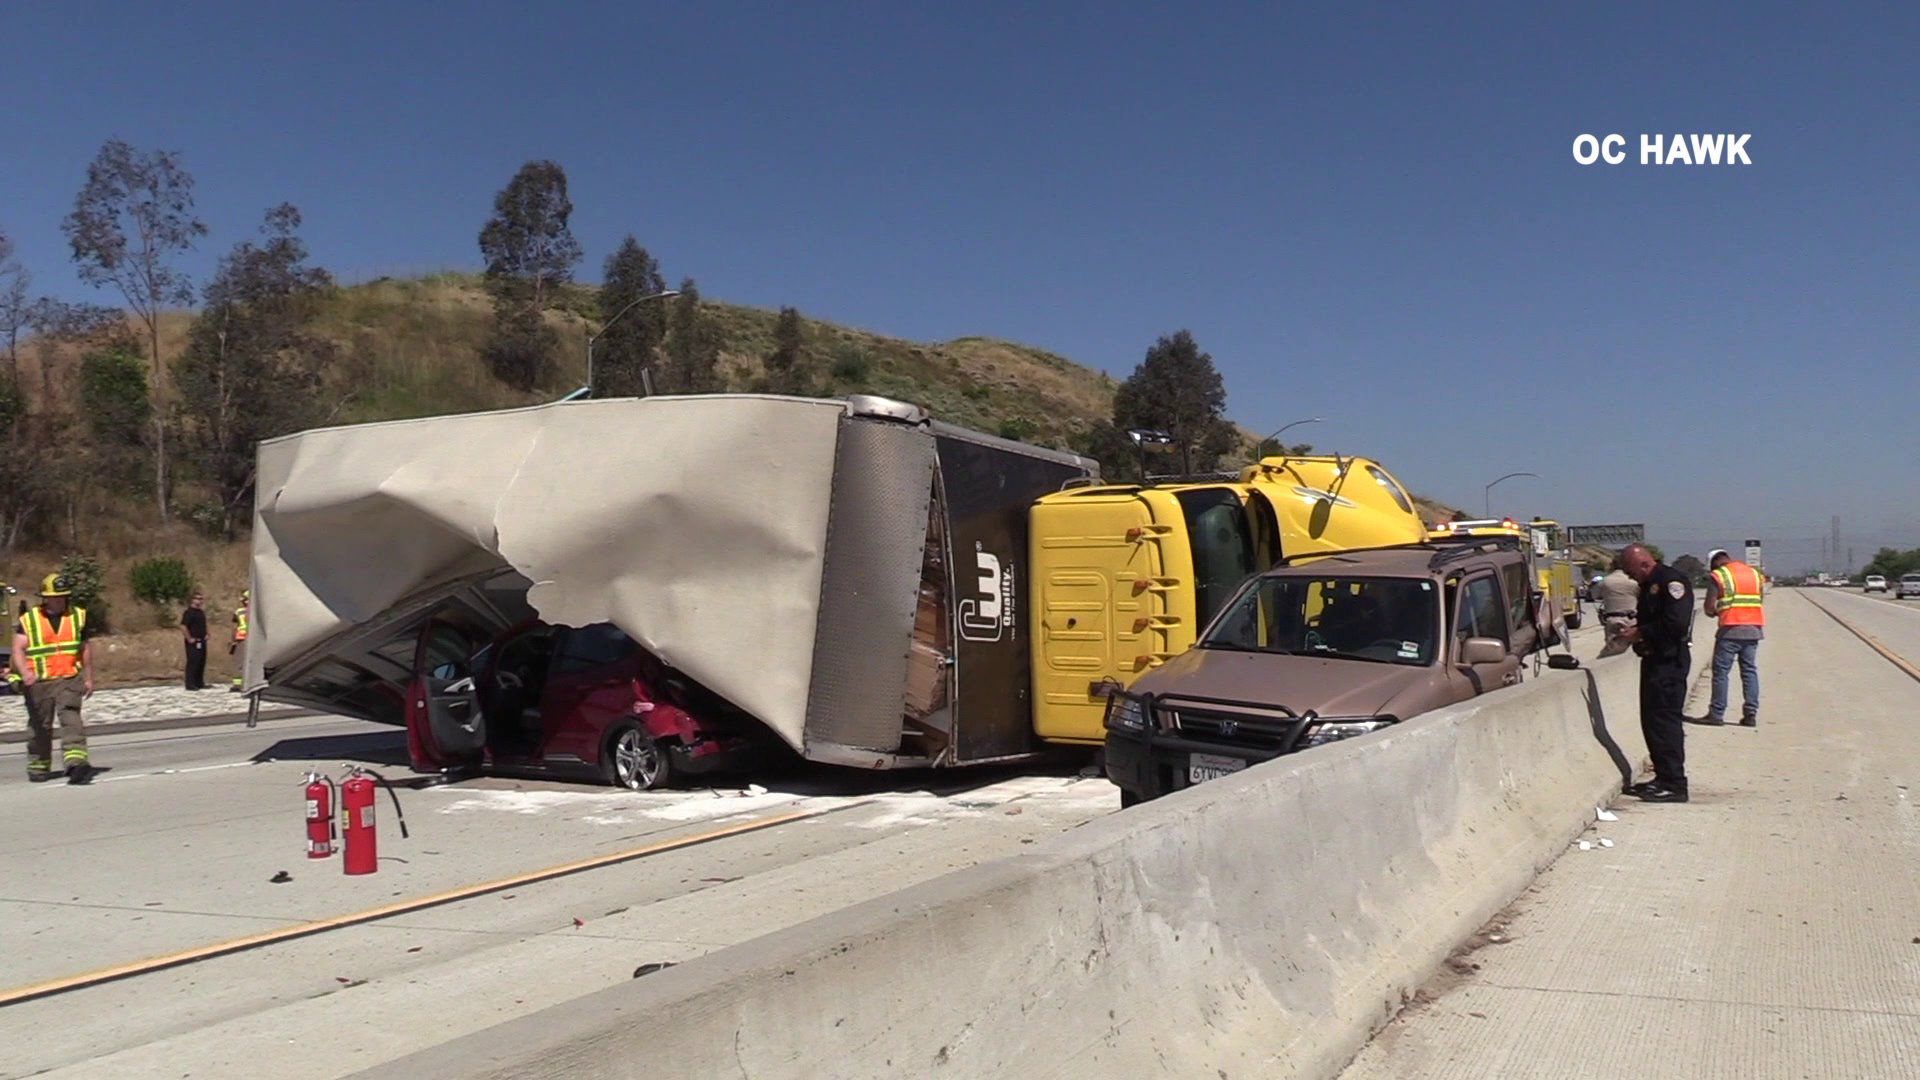 A box truck overturned, pinning a car beneath it, after being involved in a multivehicle crash in Chino Hills on June 12, 2019. (Credit: OC Hawk)